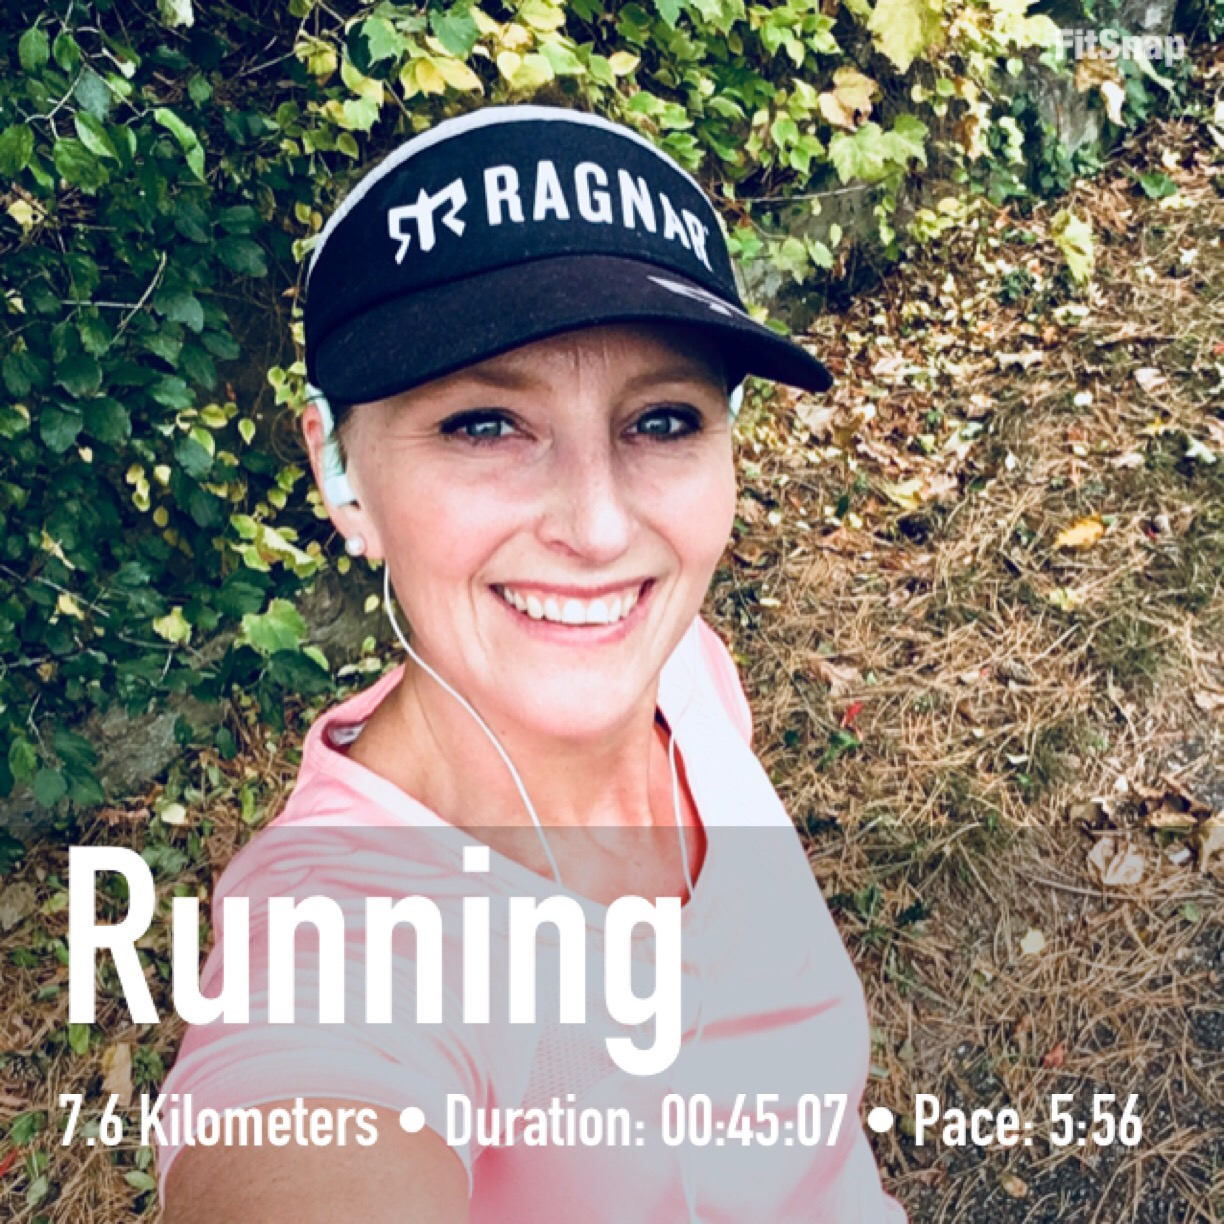 I Ran Four Times a Week for Three Months – Here's What Happened